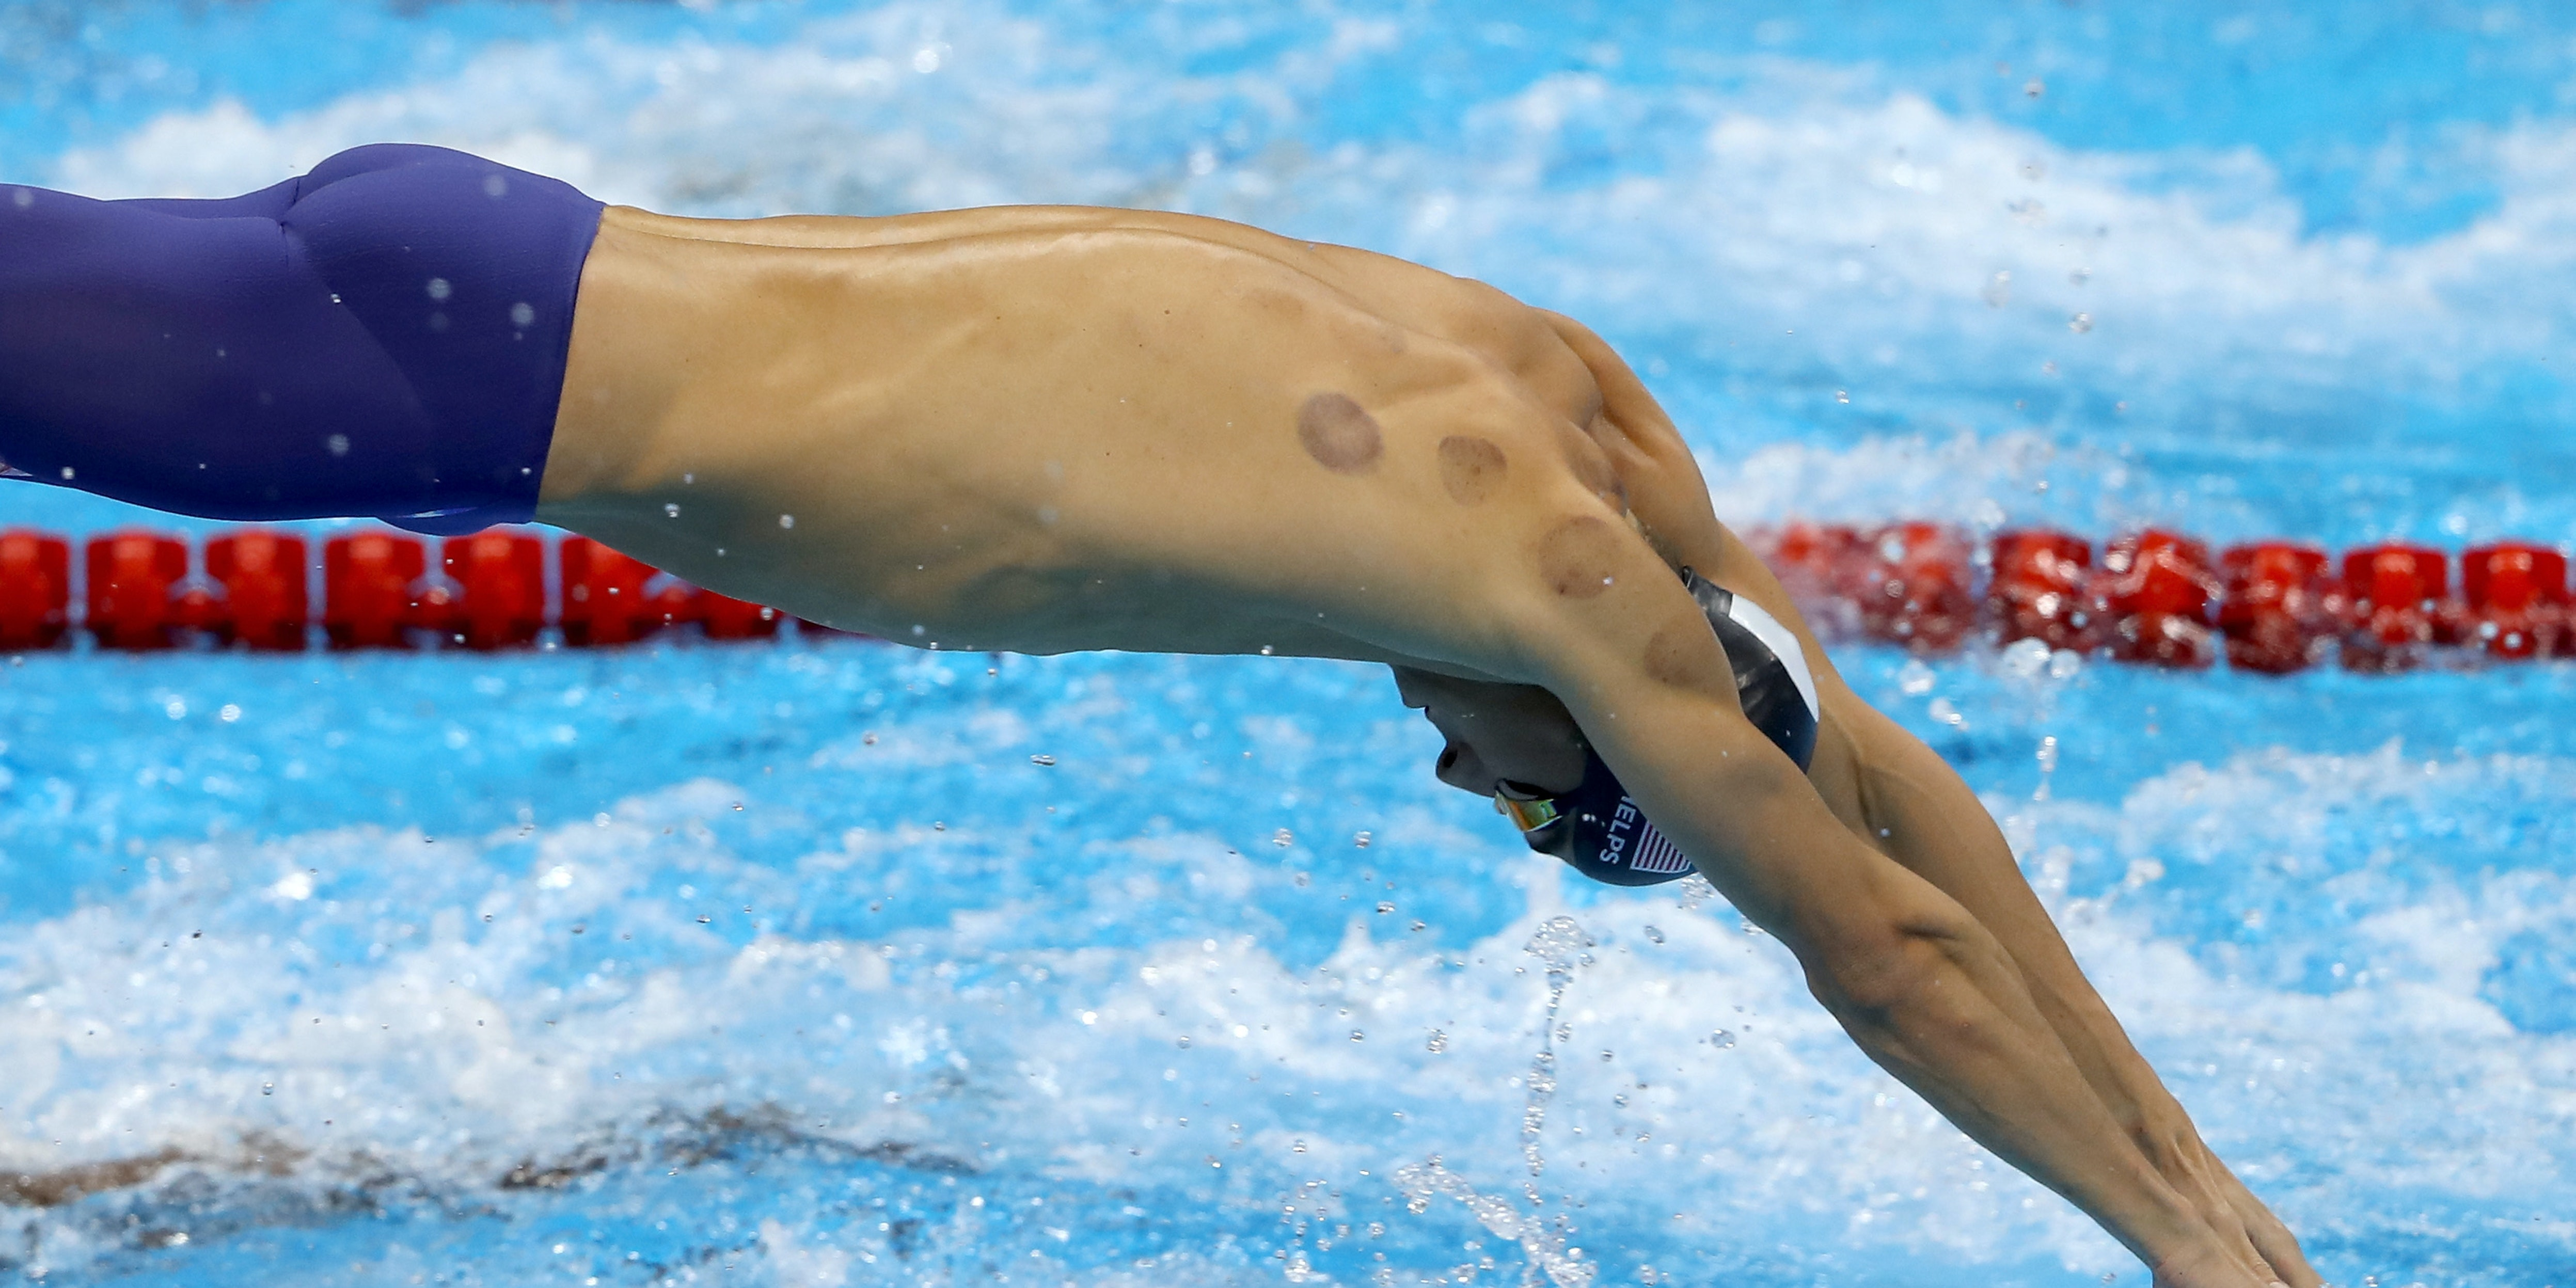 RIO DE JANEIRO, BRAZIL - AUGUST 07:  Michael Phelps of the United States competes in the Final of the Men's 4 x 100m Freestyle Relay on Day 2 of the Rio 2016 Olympic Games at the Olympic Aquatics Stadium on August 7, 2016 in Rio de Janeiro, Brazil.  (Photo by Al Bello/Getty Images)